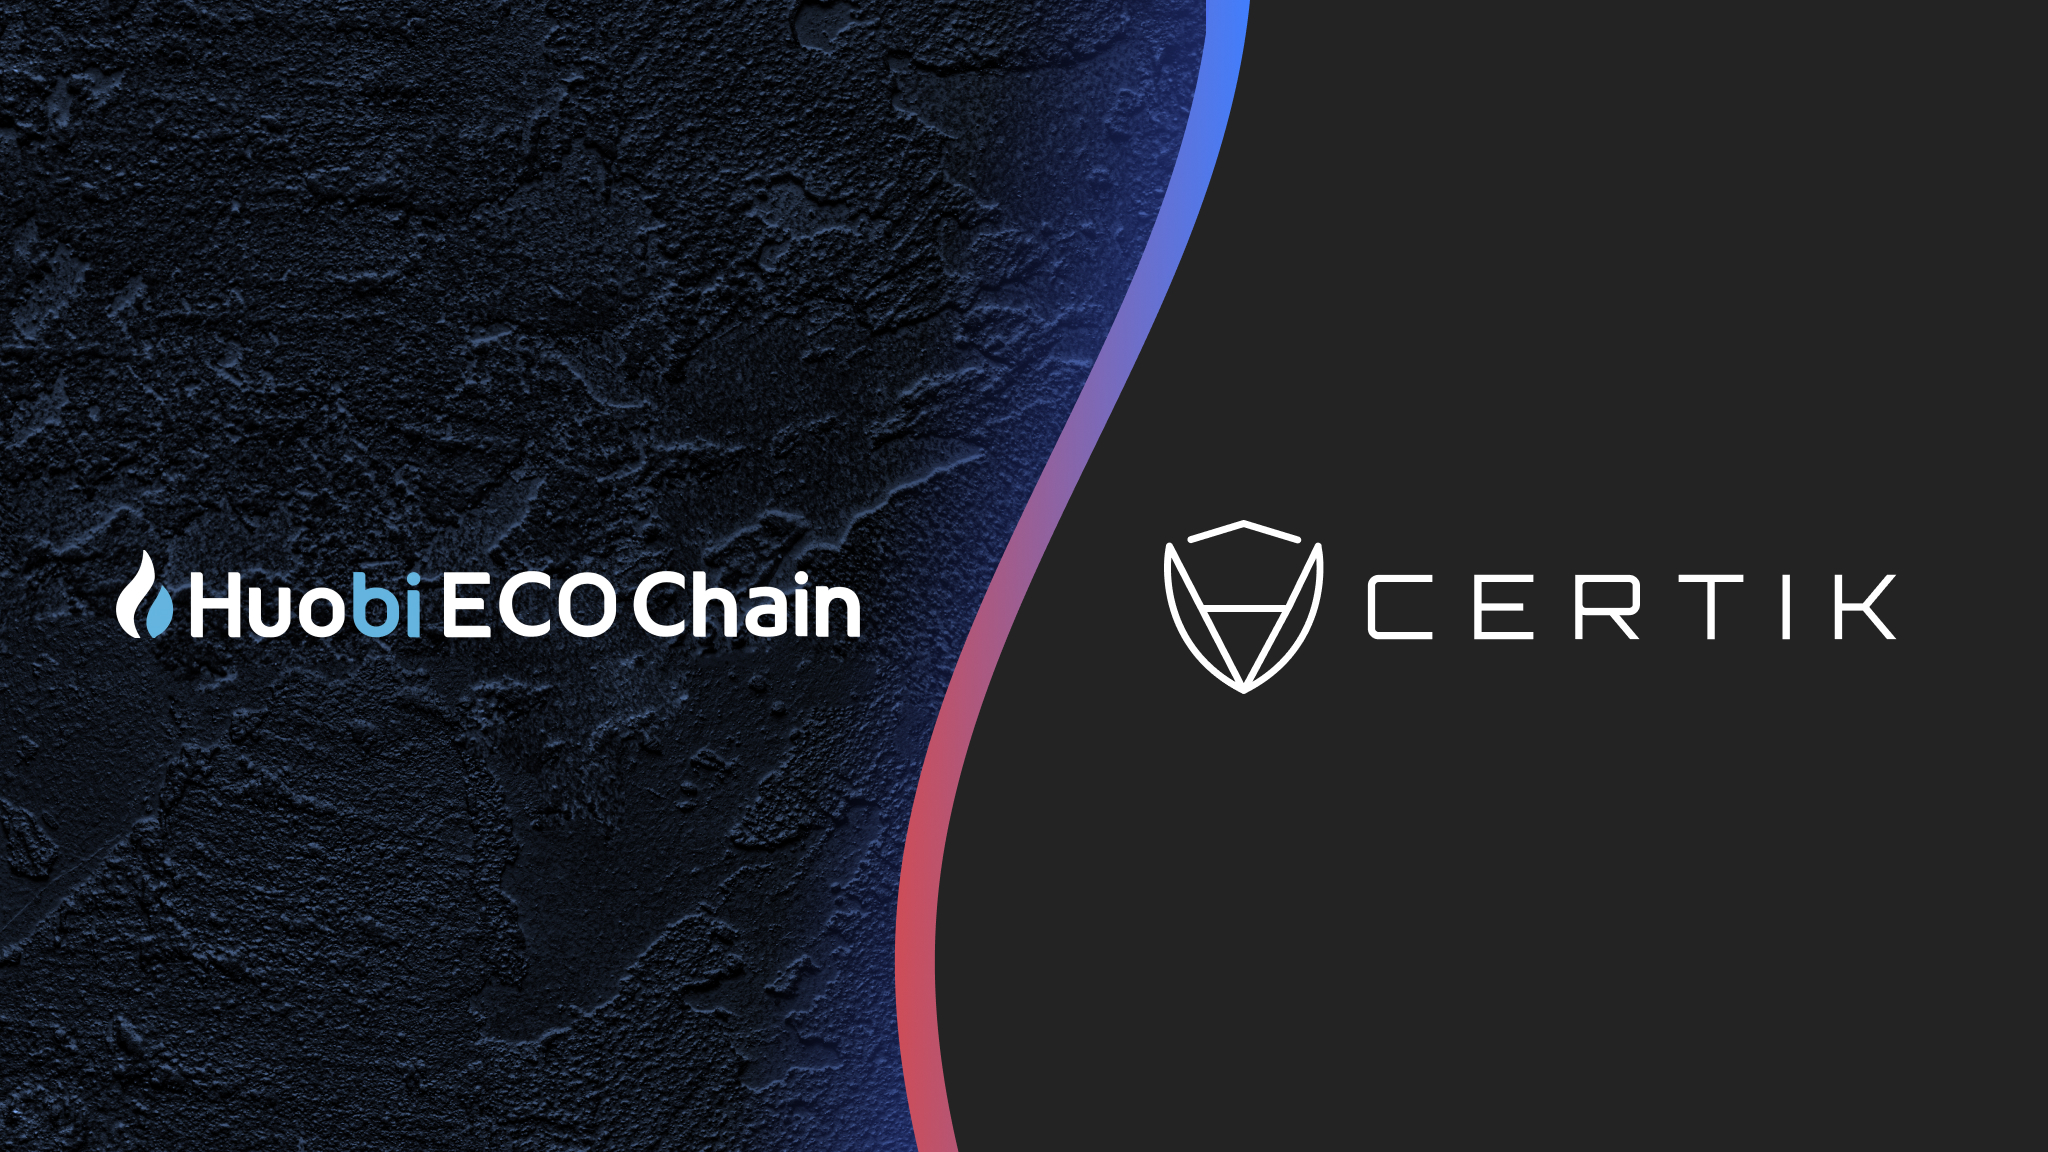 CertiK and Huobi ECO Chain (Heco) Form a Strategic Partnership to Secure the Blockchain Ecosystem